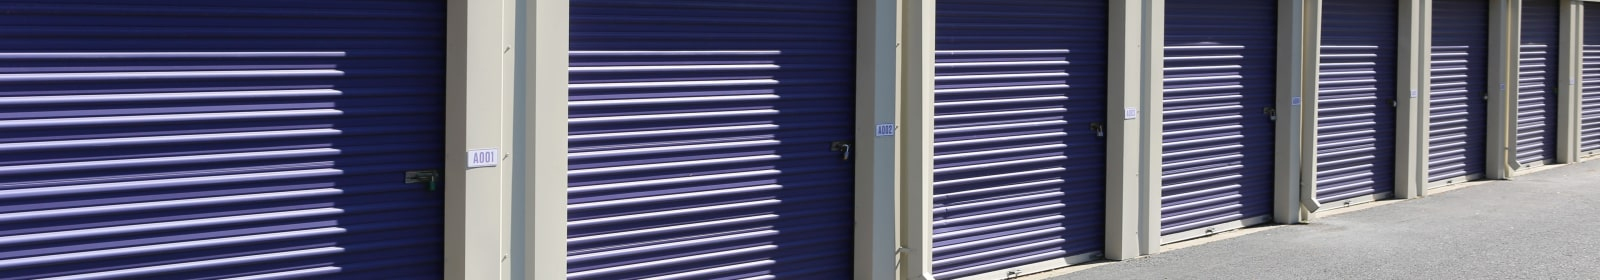 Contact StoreSmart Self-Storage in Naples, Florida